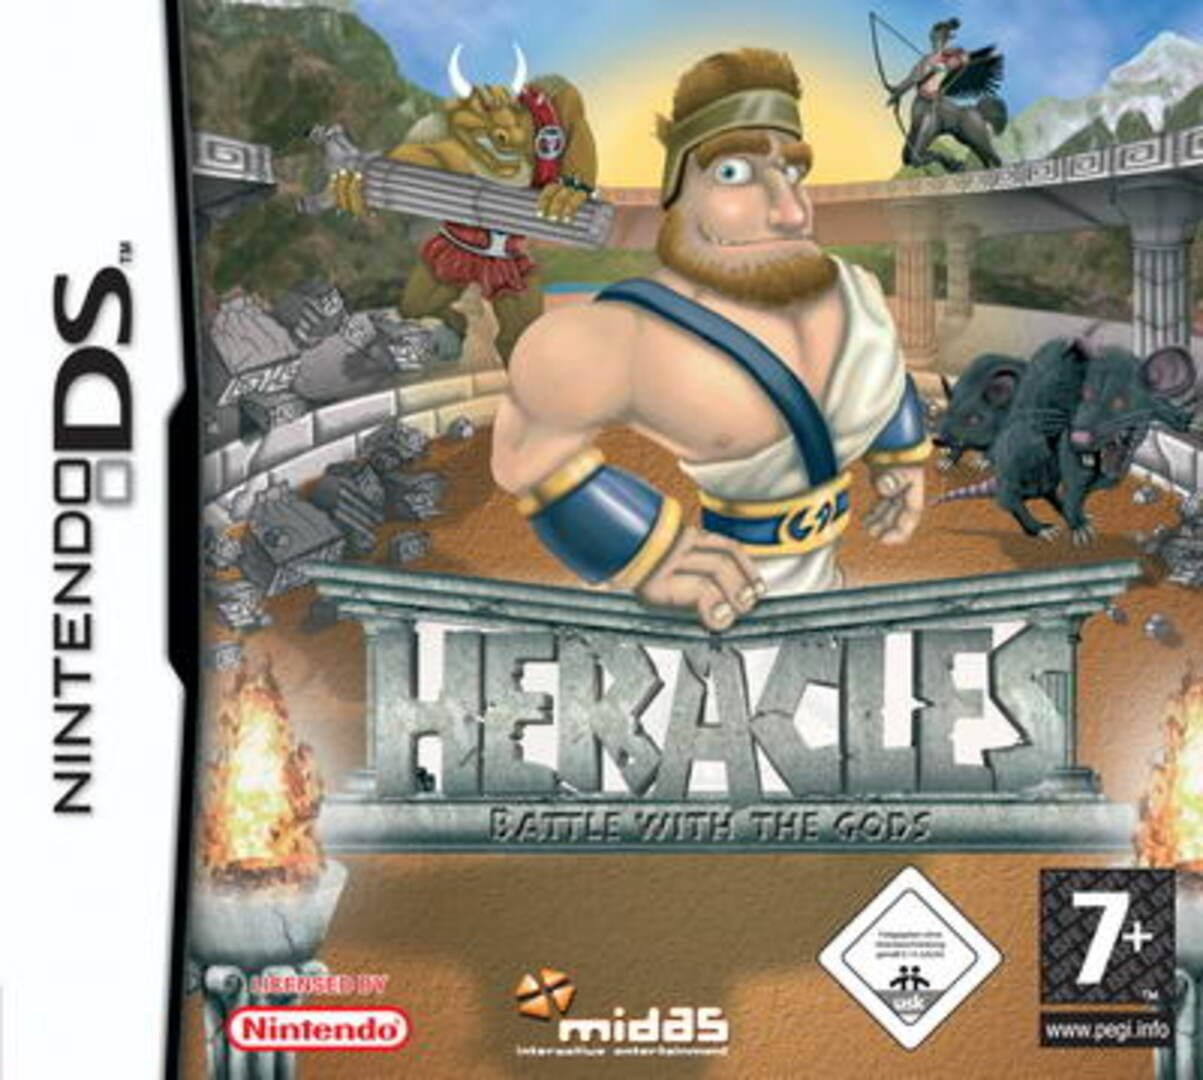 buy Heracles: Battle with the Gods cd key for all platform